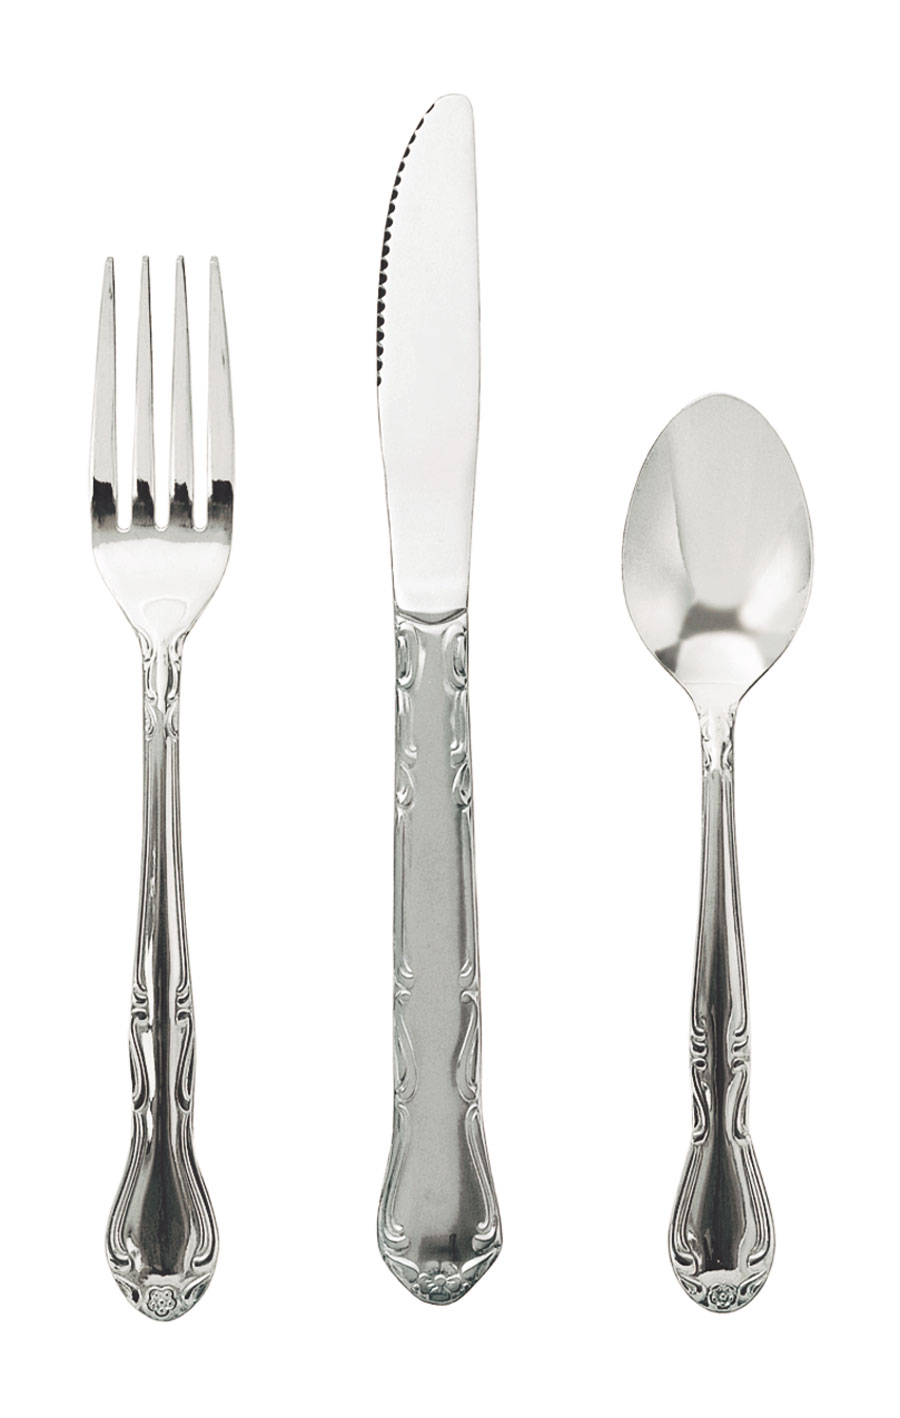 Update International CE-201 Claridge Teaspoon, Bright Polish - 1 doz